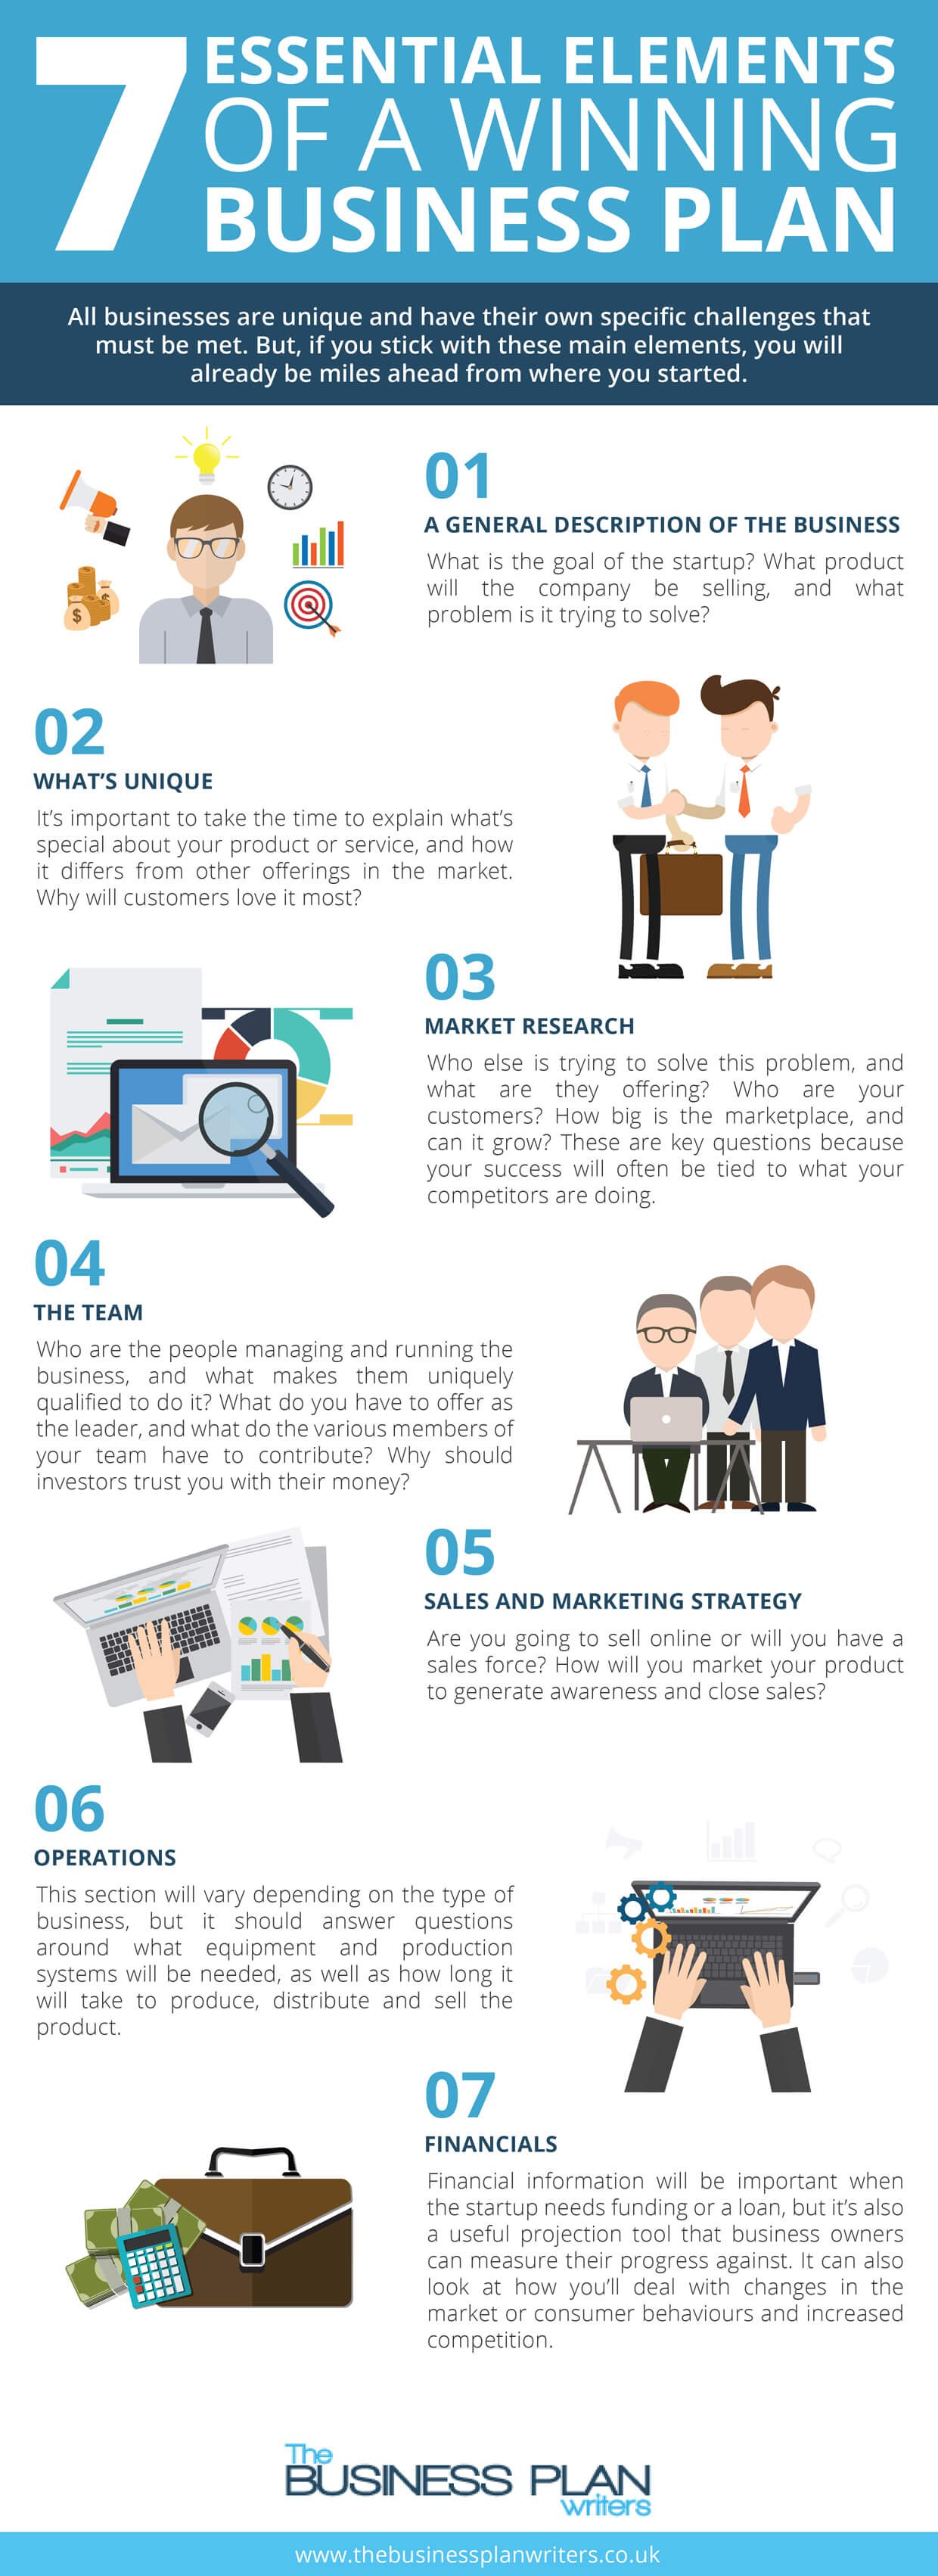 Infographic-7-Essential-Elements-of-a-Winning-Business-Plan